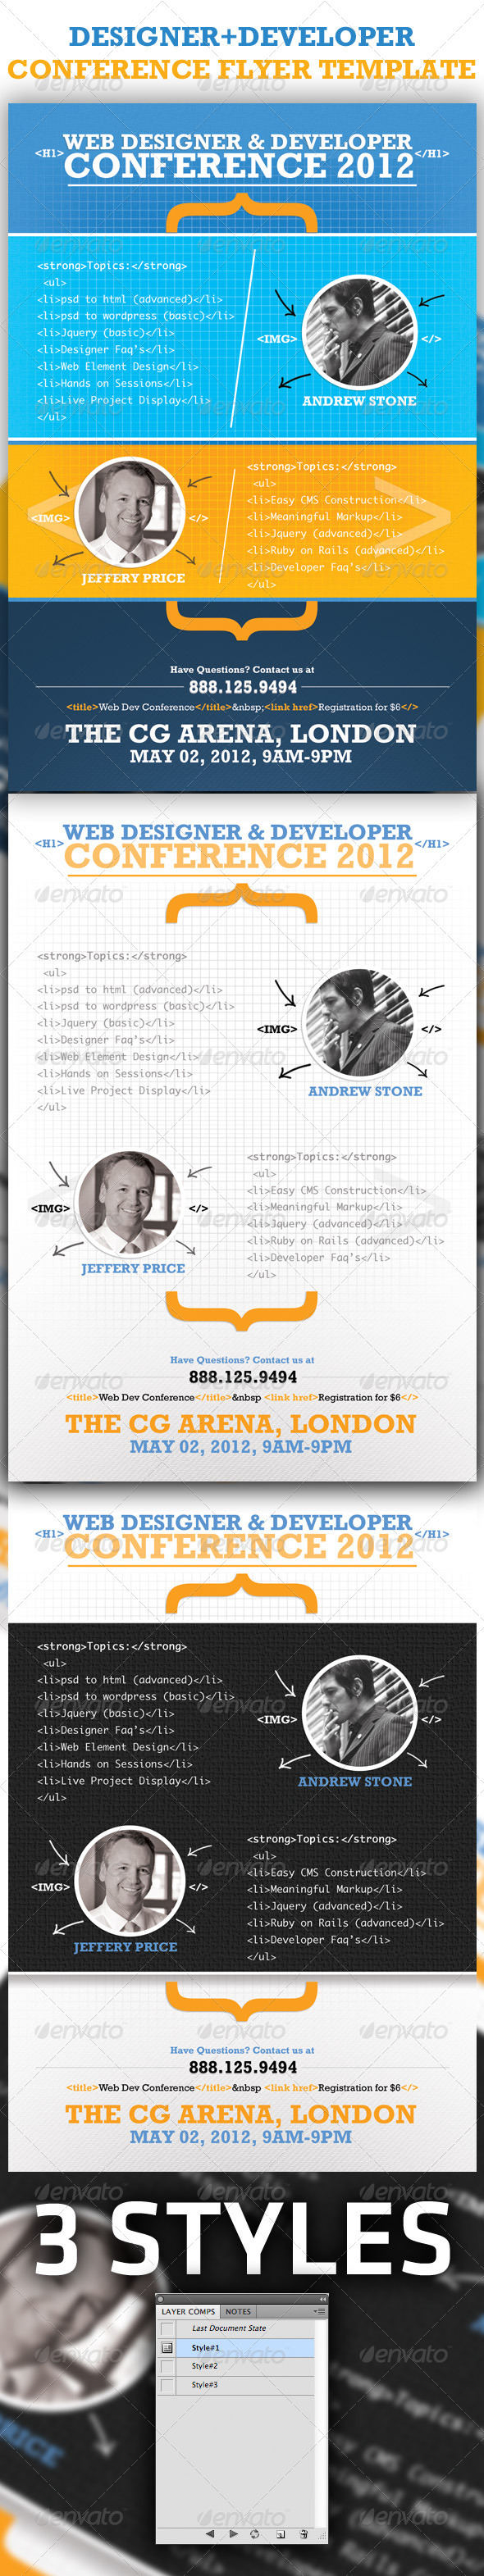 Web Designer & Developer Conference Flyer Template - Flyers Print Templates